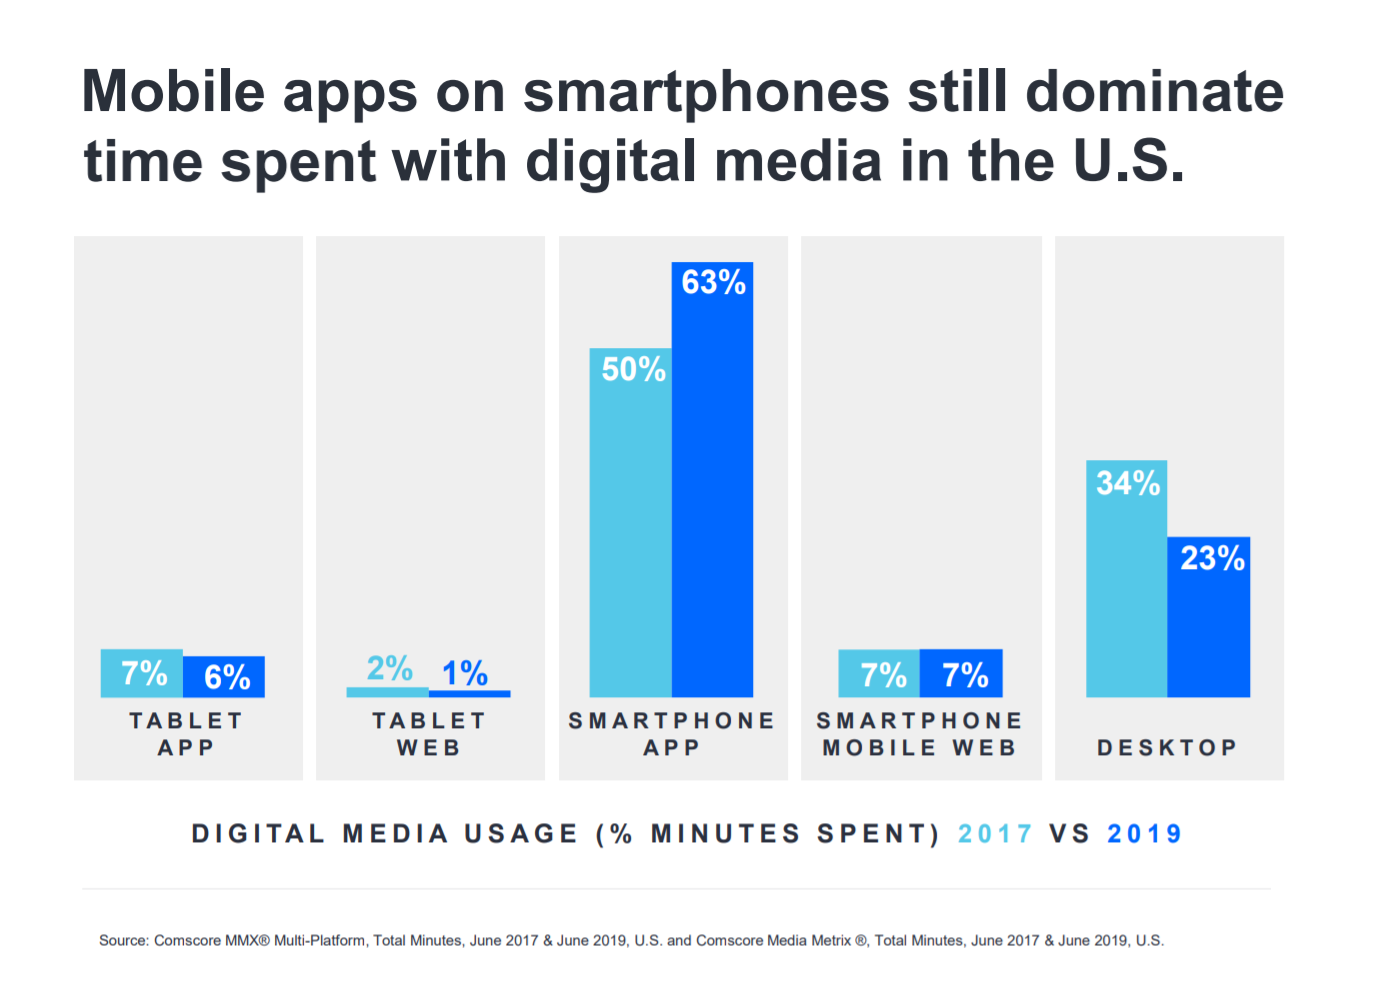 Mobile apps on smartphones still dominate time spent with digital media in the U.S. - chart